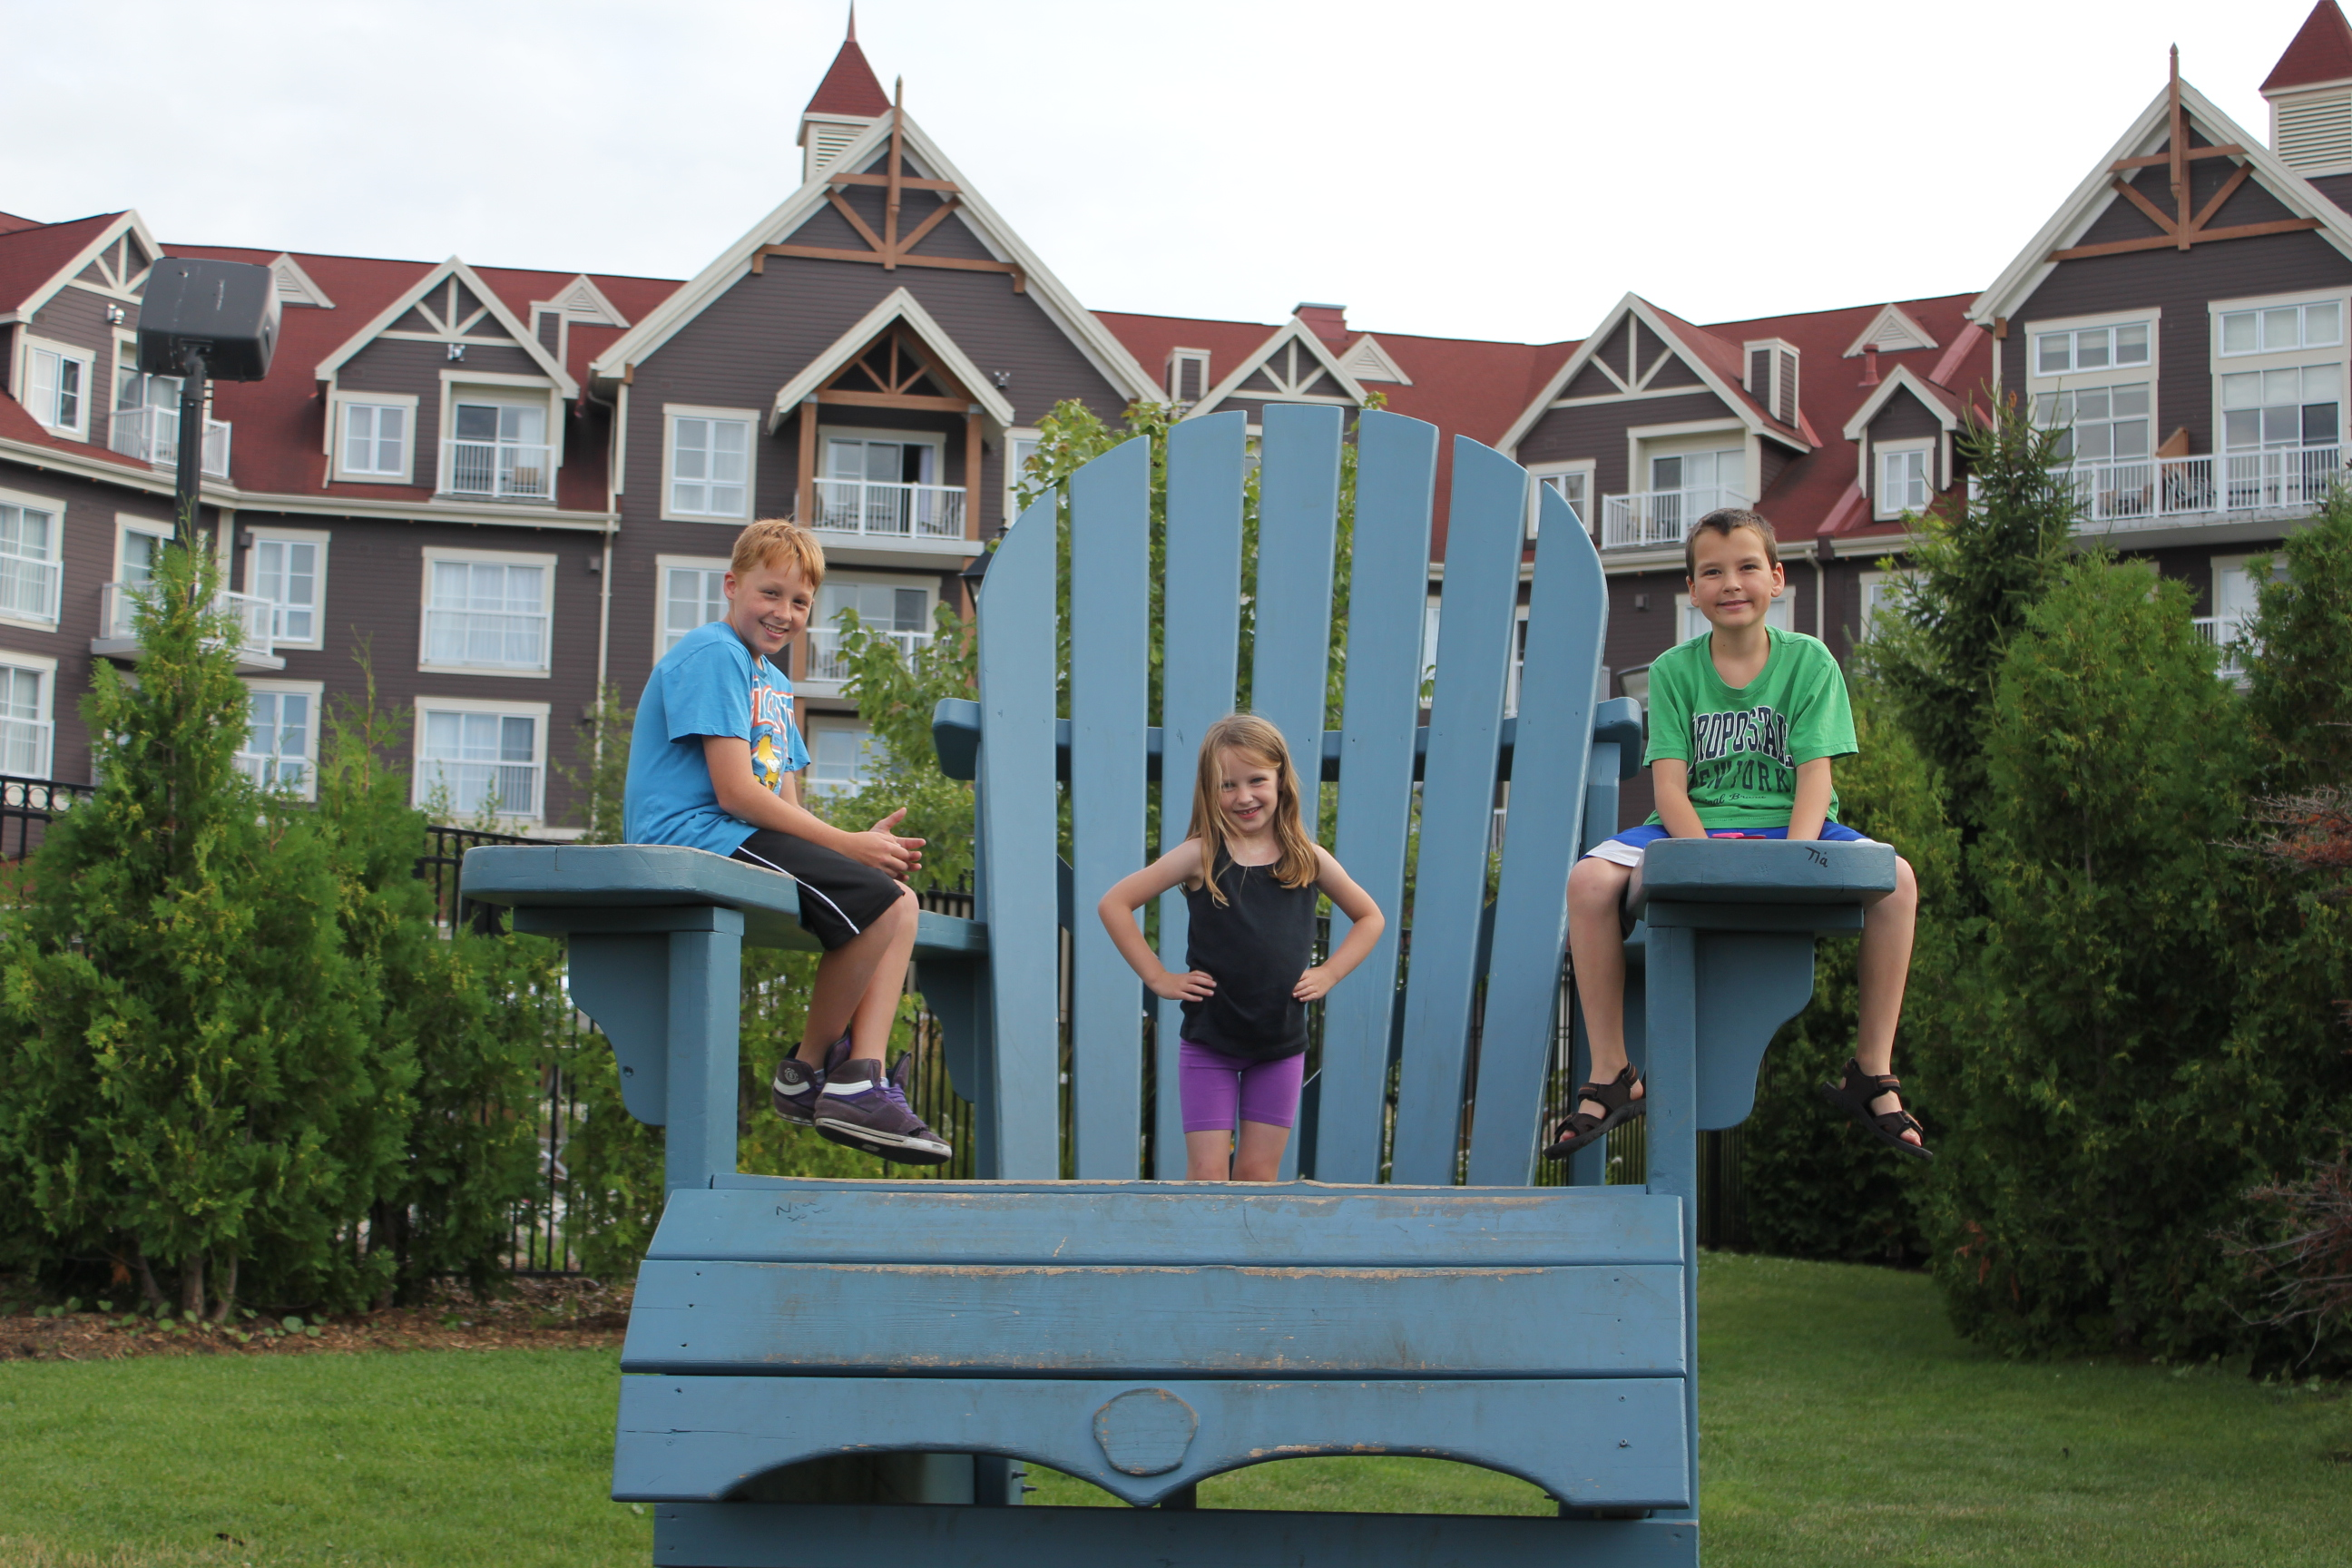 Summer Family Fun at Blue Mountain